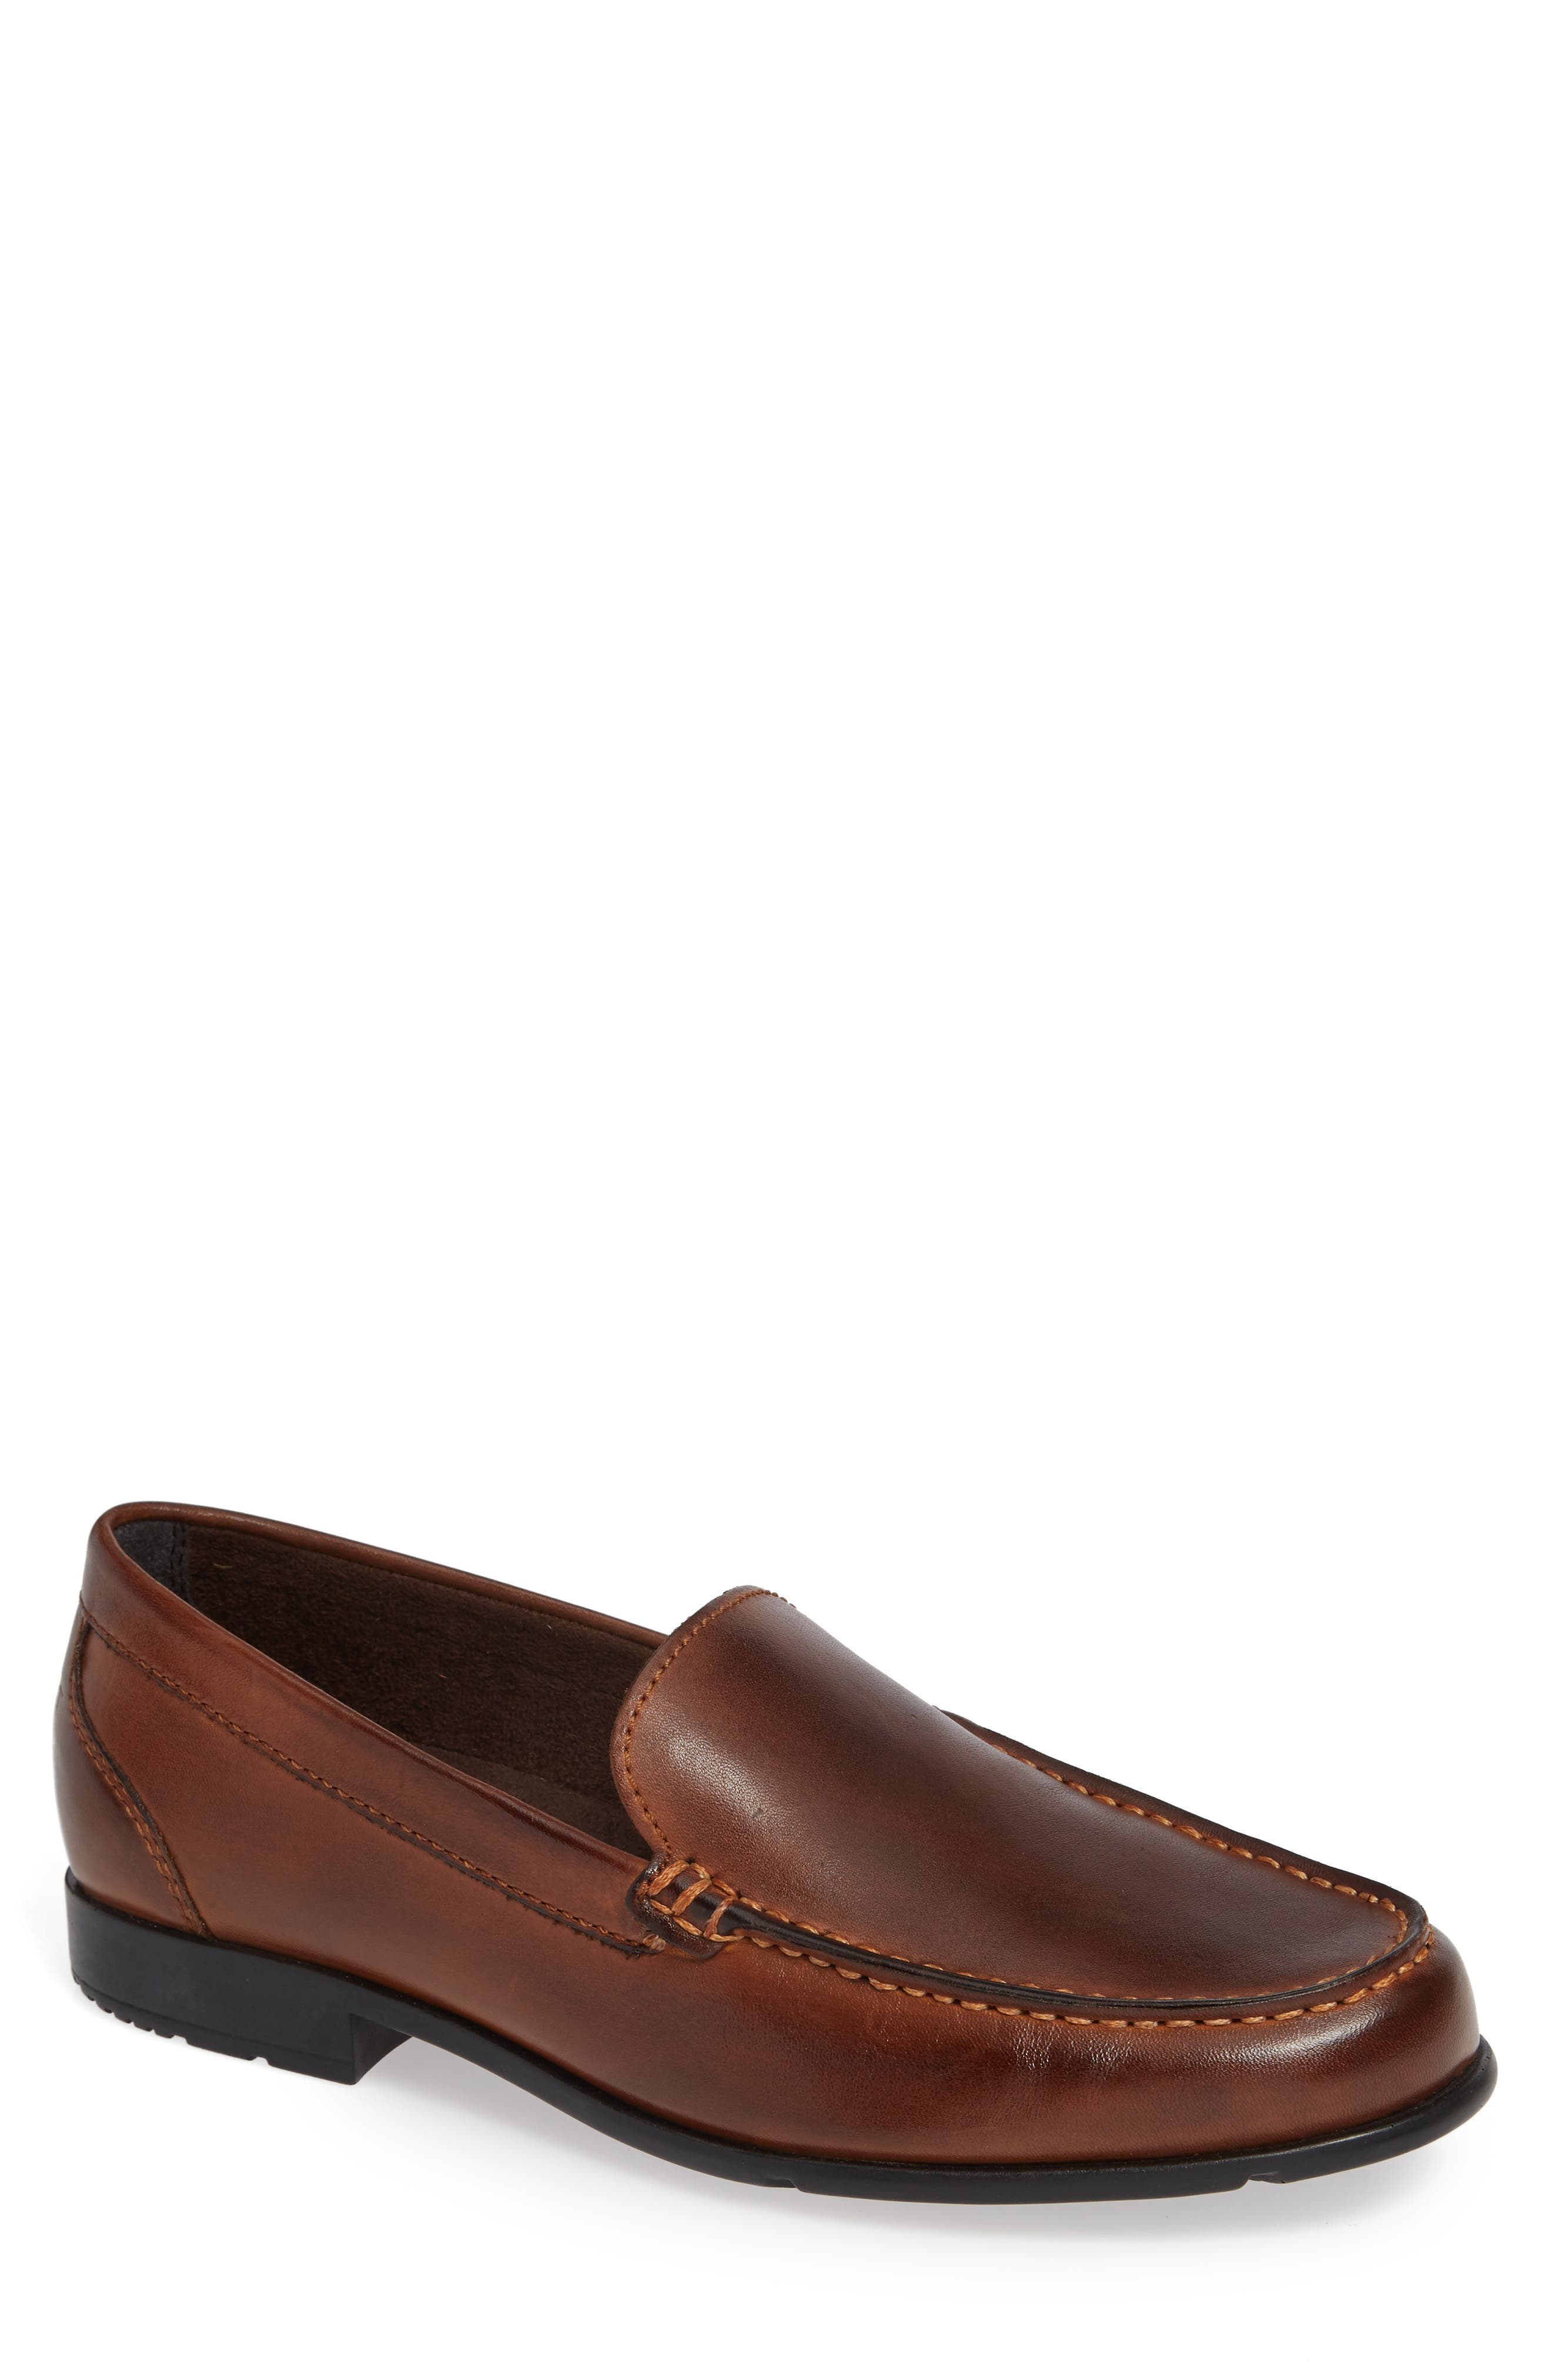 Classic Venetian Loafer,                         Main,                         color, DARK BROWN LEATHER